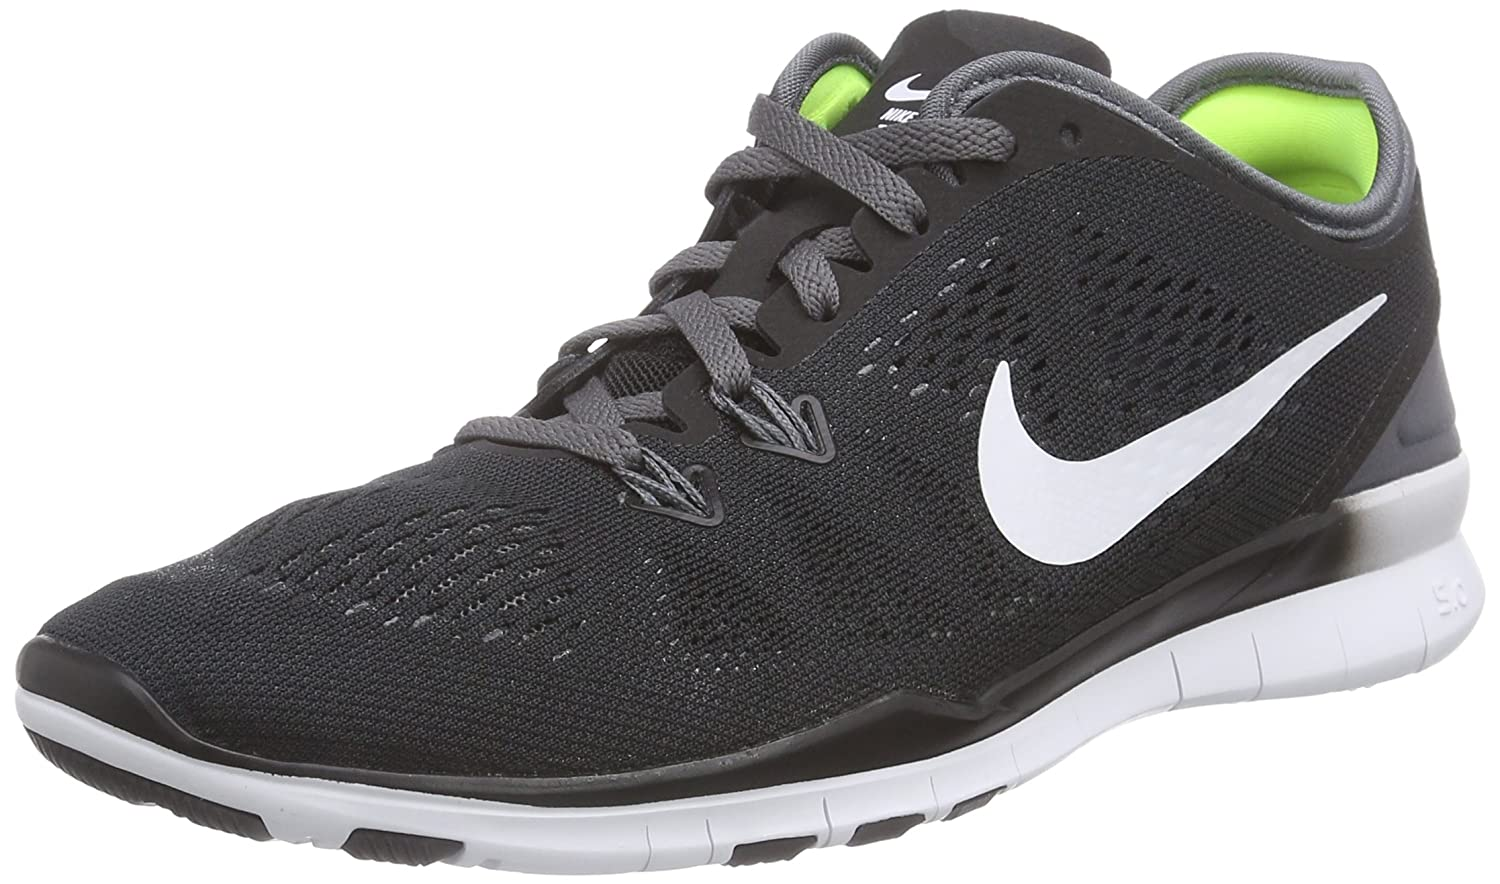 Amazon.com: Nike Women\u0026#39;s Free 5.0 Tr Fit 5 Prt Training Shoe Women US: Nike: Shoes